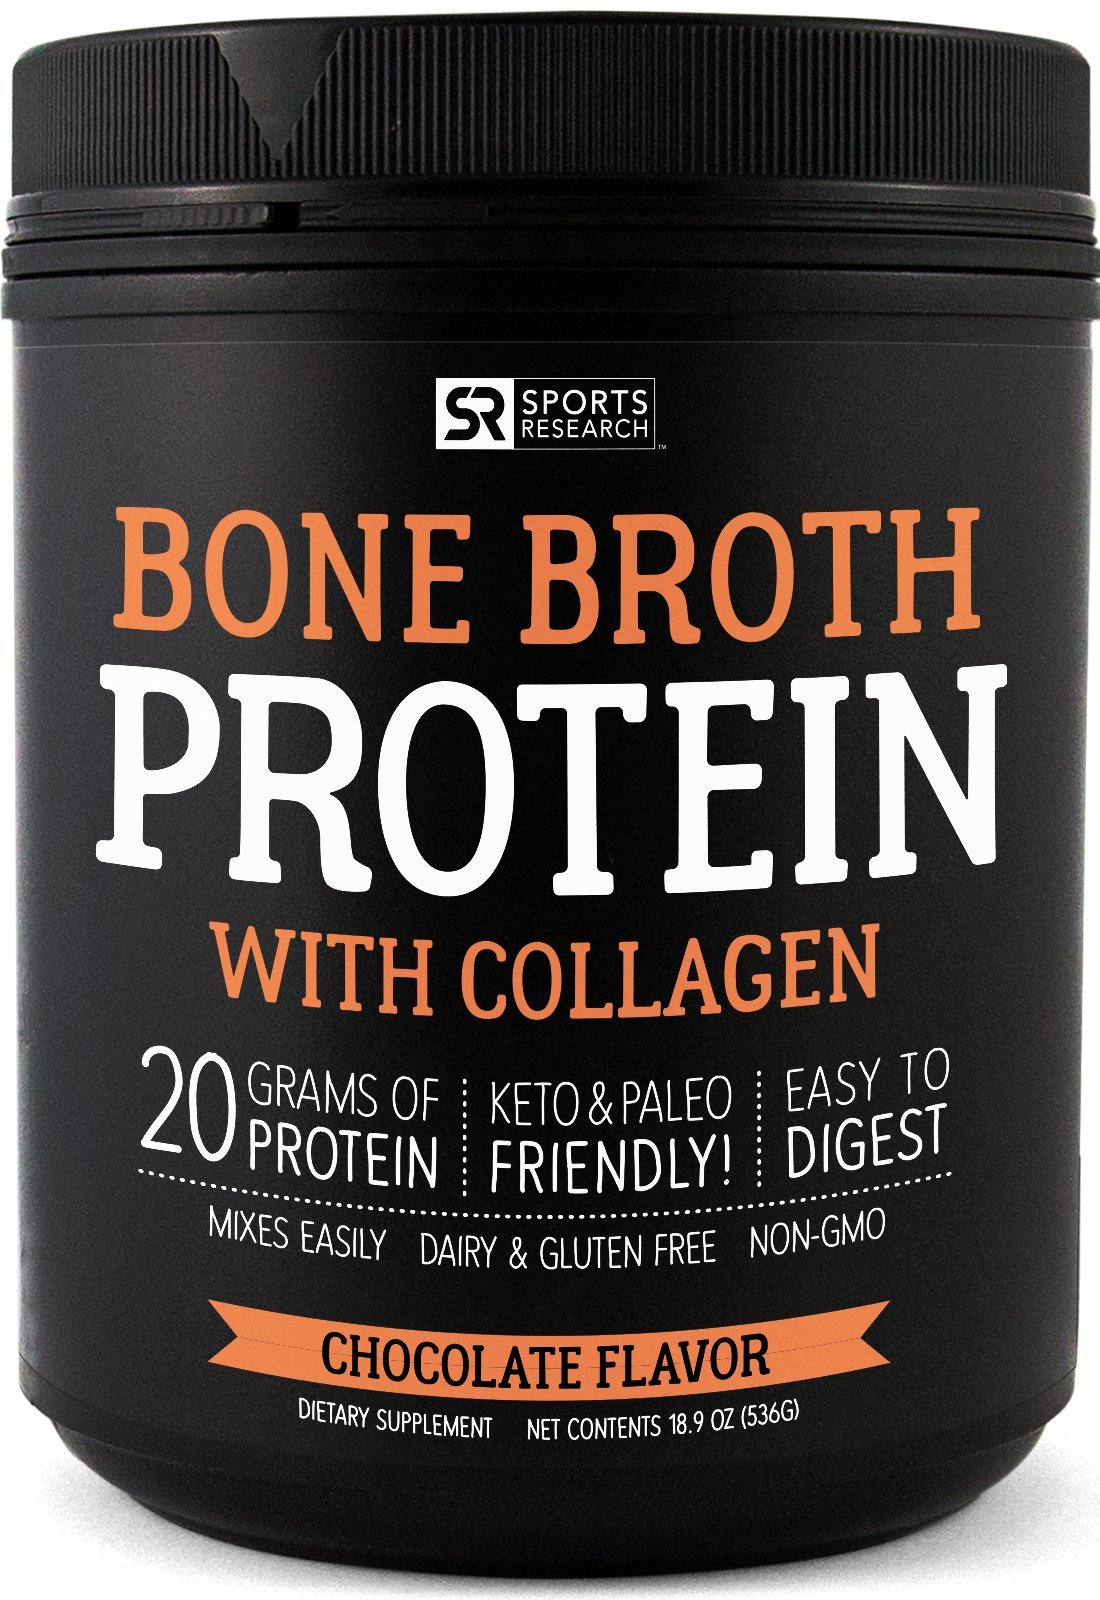 Bone Broth Protein with Collagen (Chocolate Flavor) ~ Paleo & Keto Diet Approved ~ for Healthy Skin, Joints & Muscles ~ Gluten, GMO & Dairy Free by Sports Research